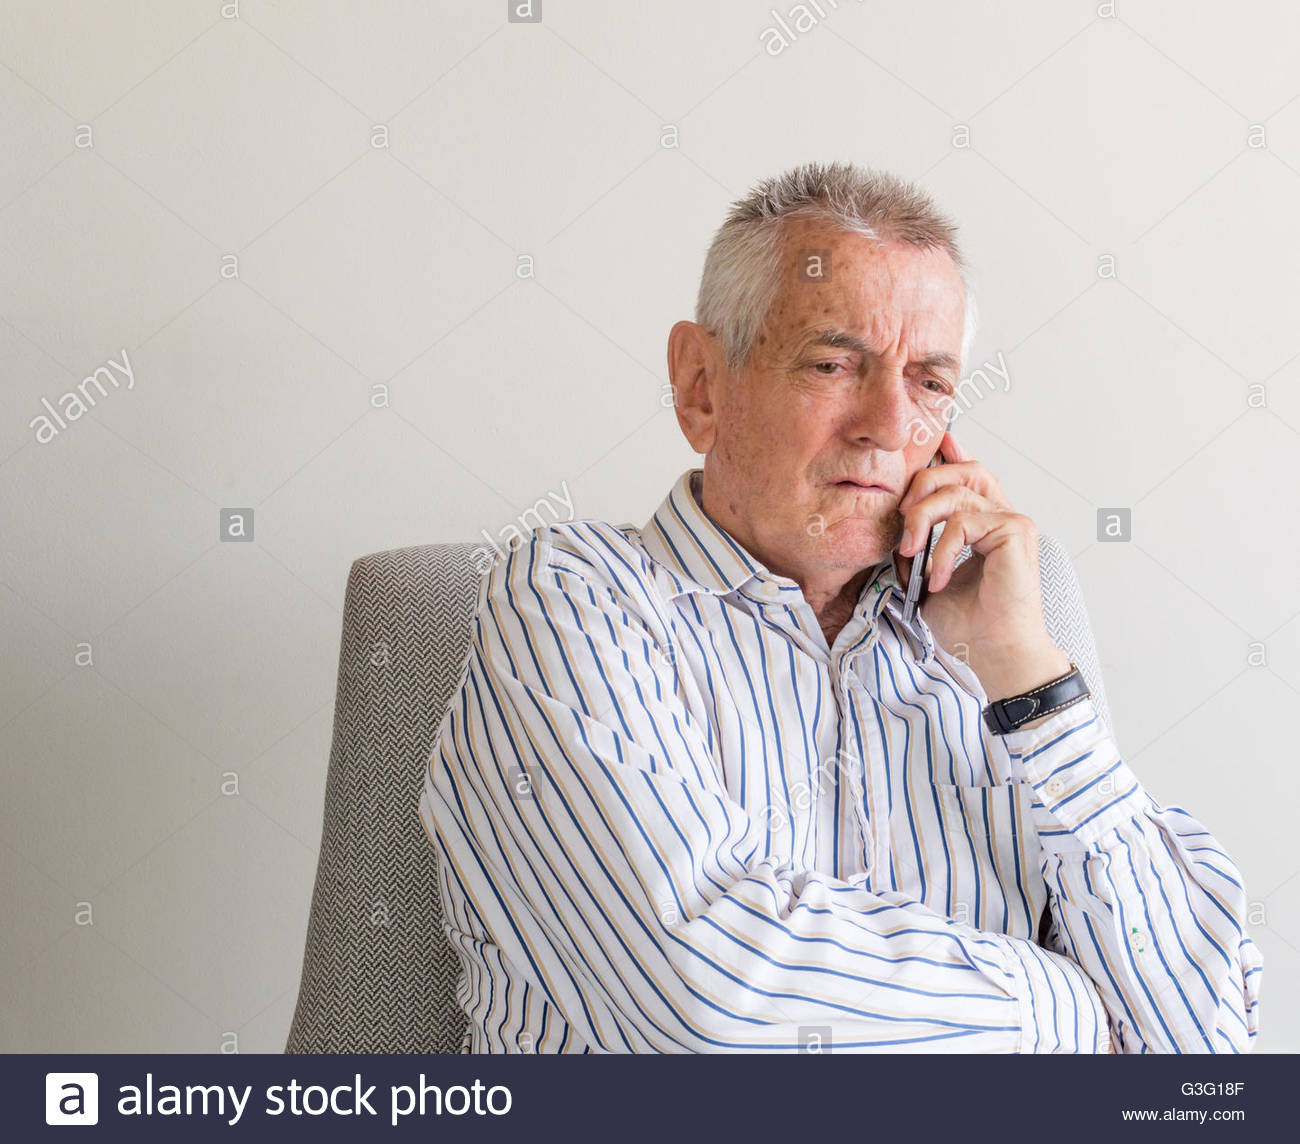 Older man in striped shirt talking on mobile phone and looking concerned - Stock Image